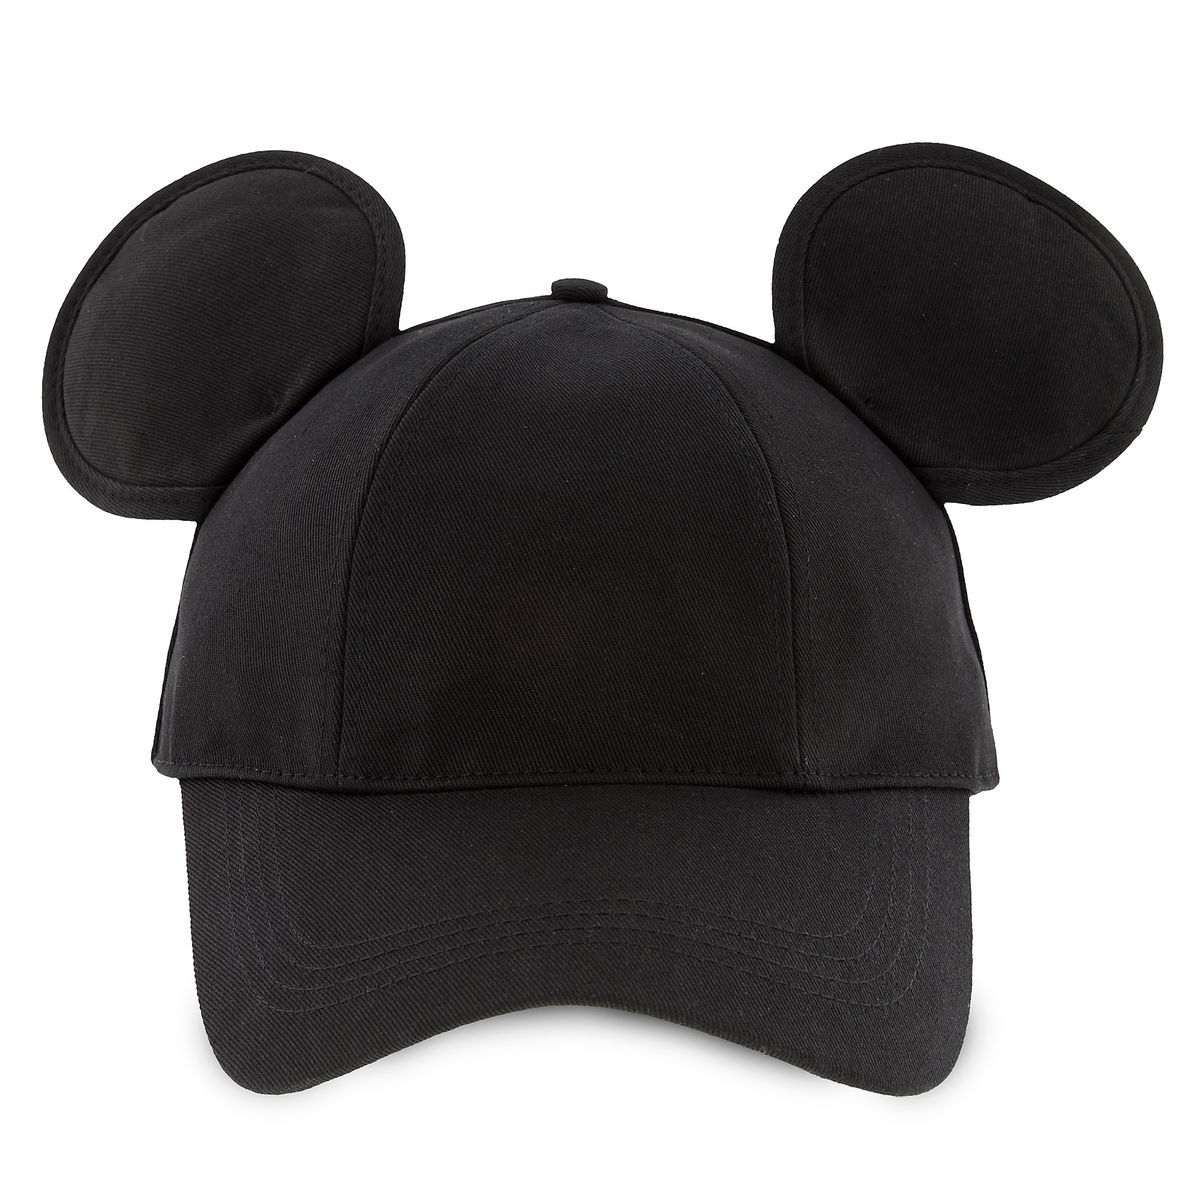 f70dd748191 Product Image of Mickey Mouse Ears Baseball Cap for Adults   1